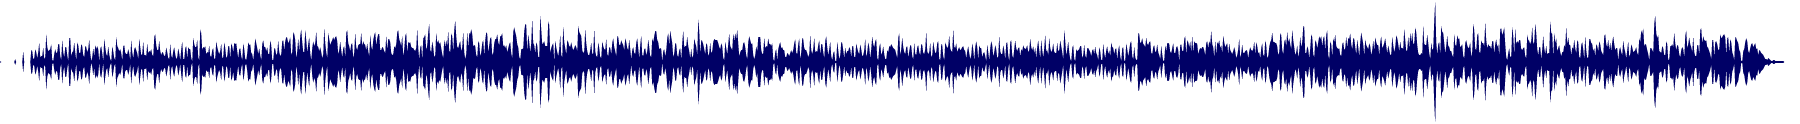 waveform of track #60186